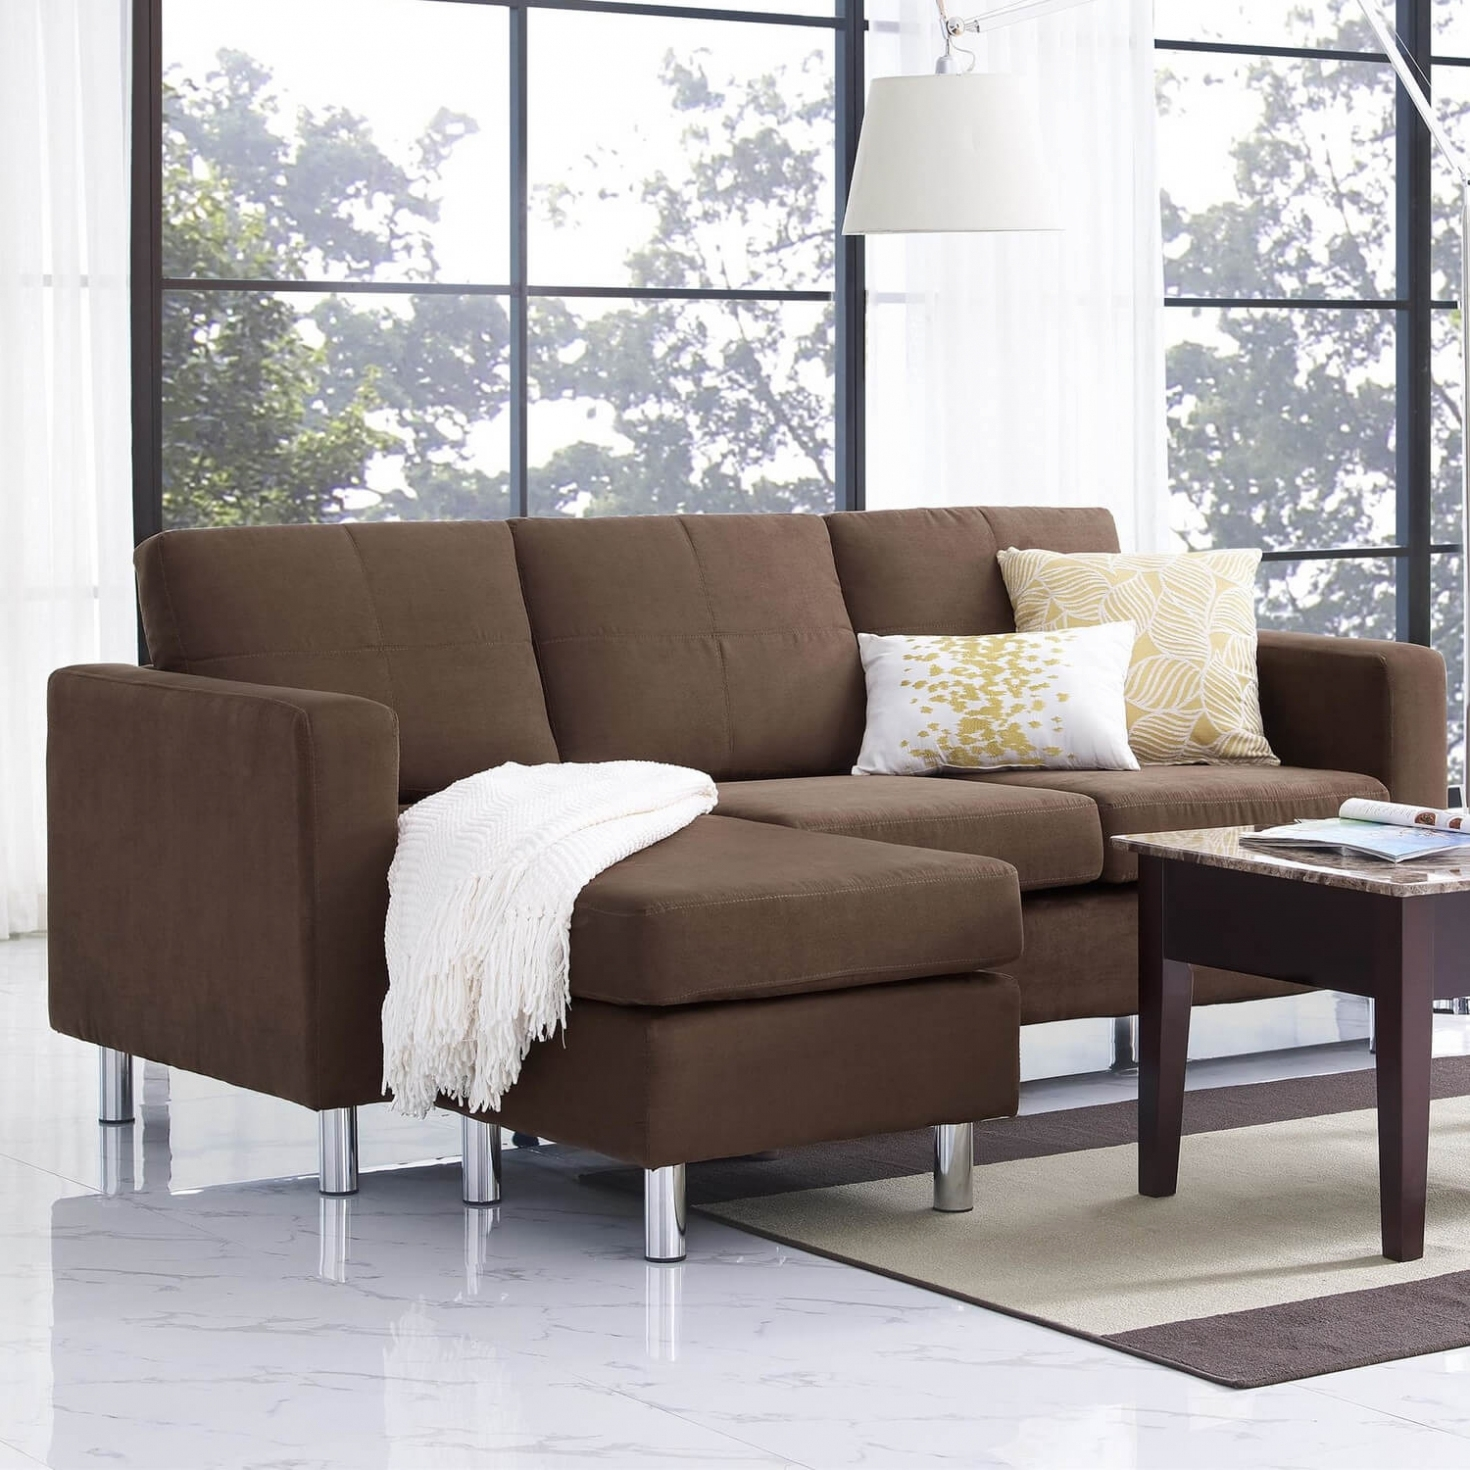 sofa sleepers under 400 huntington house quality 10 collection of sectional sofas ideas